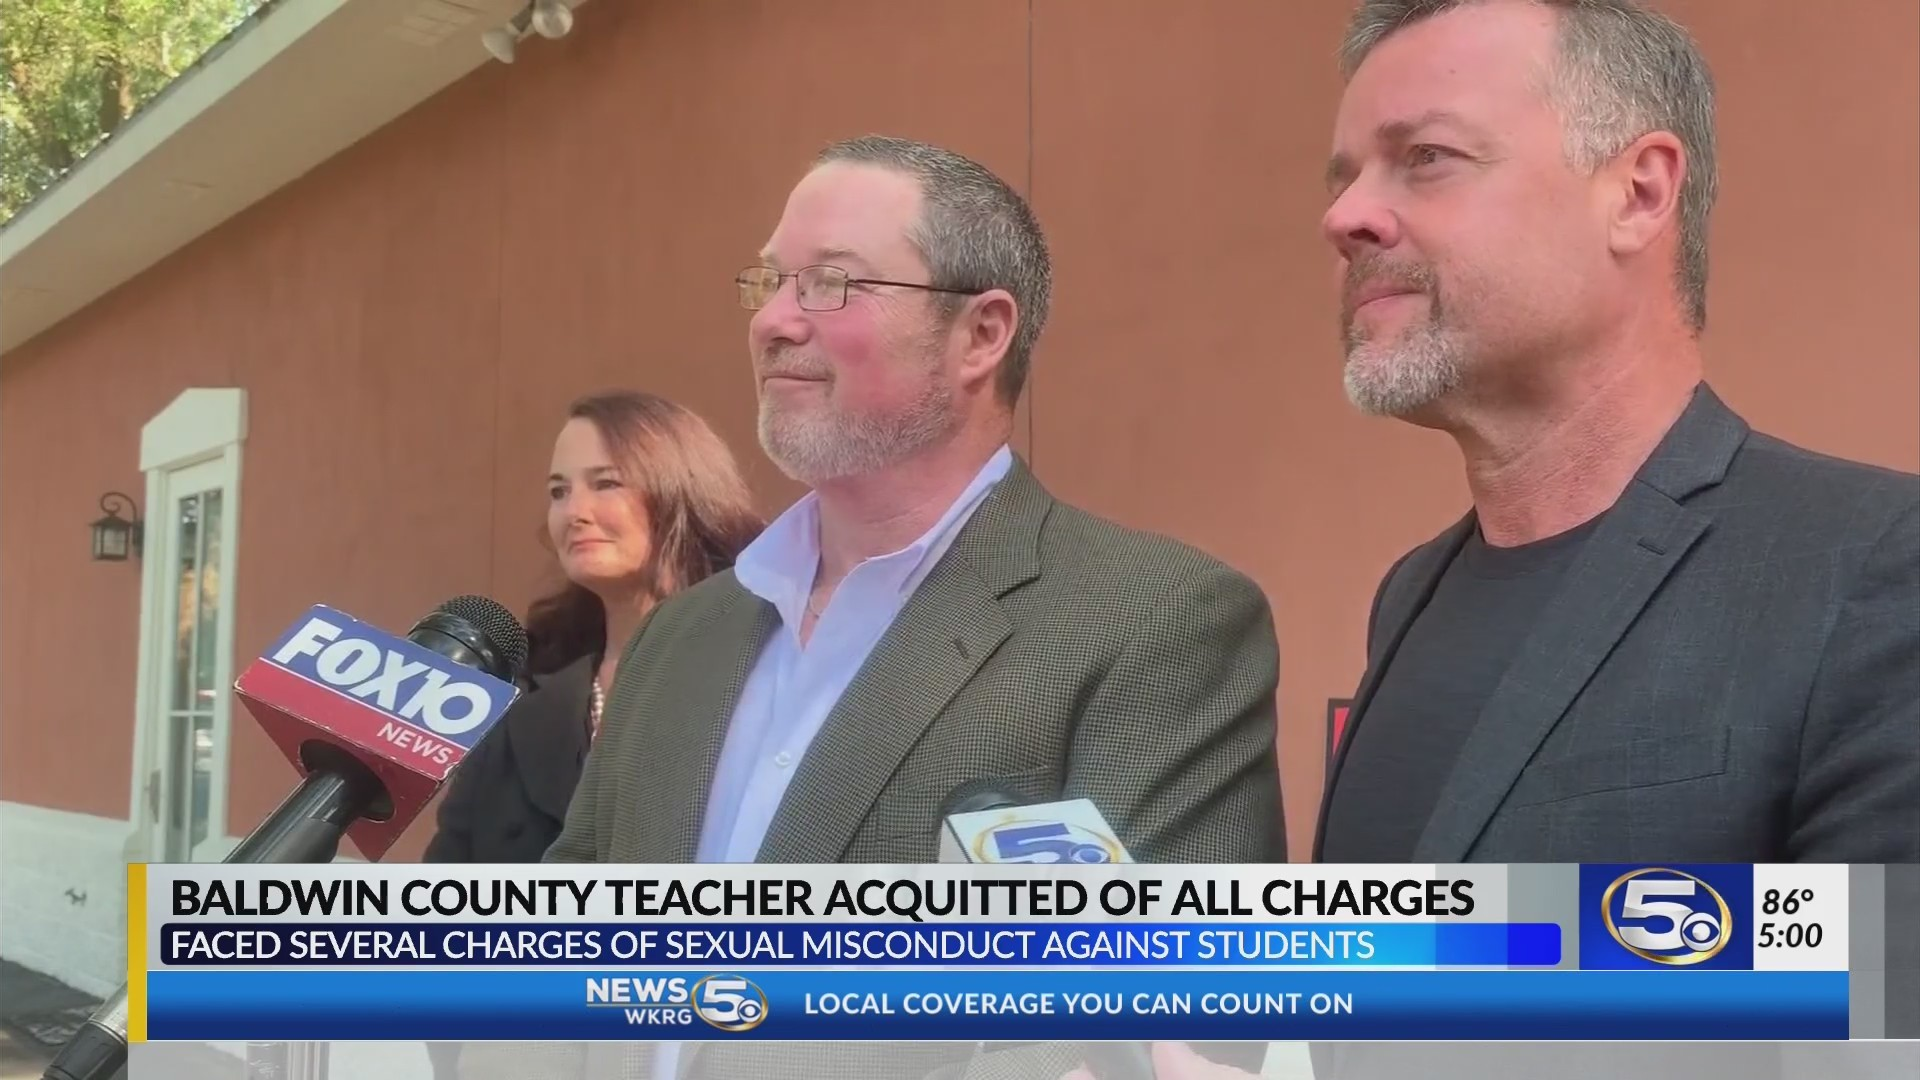 VIDEO: Baldwin County teacher found not guilty of sexual misconduct, wants to teach again